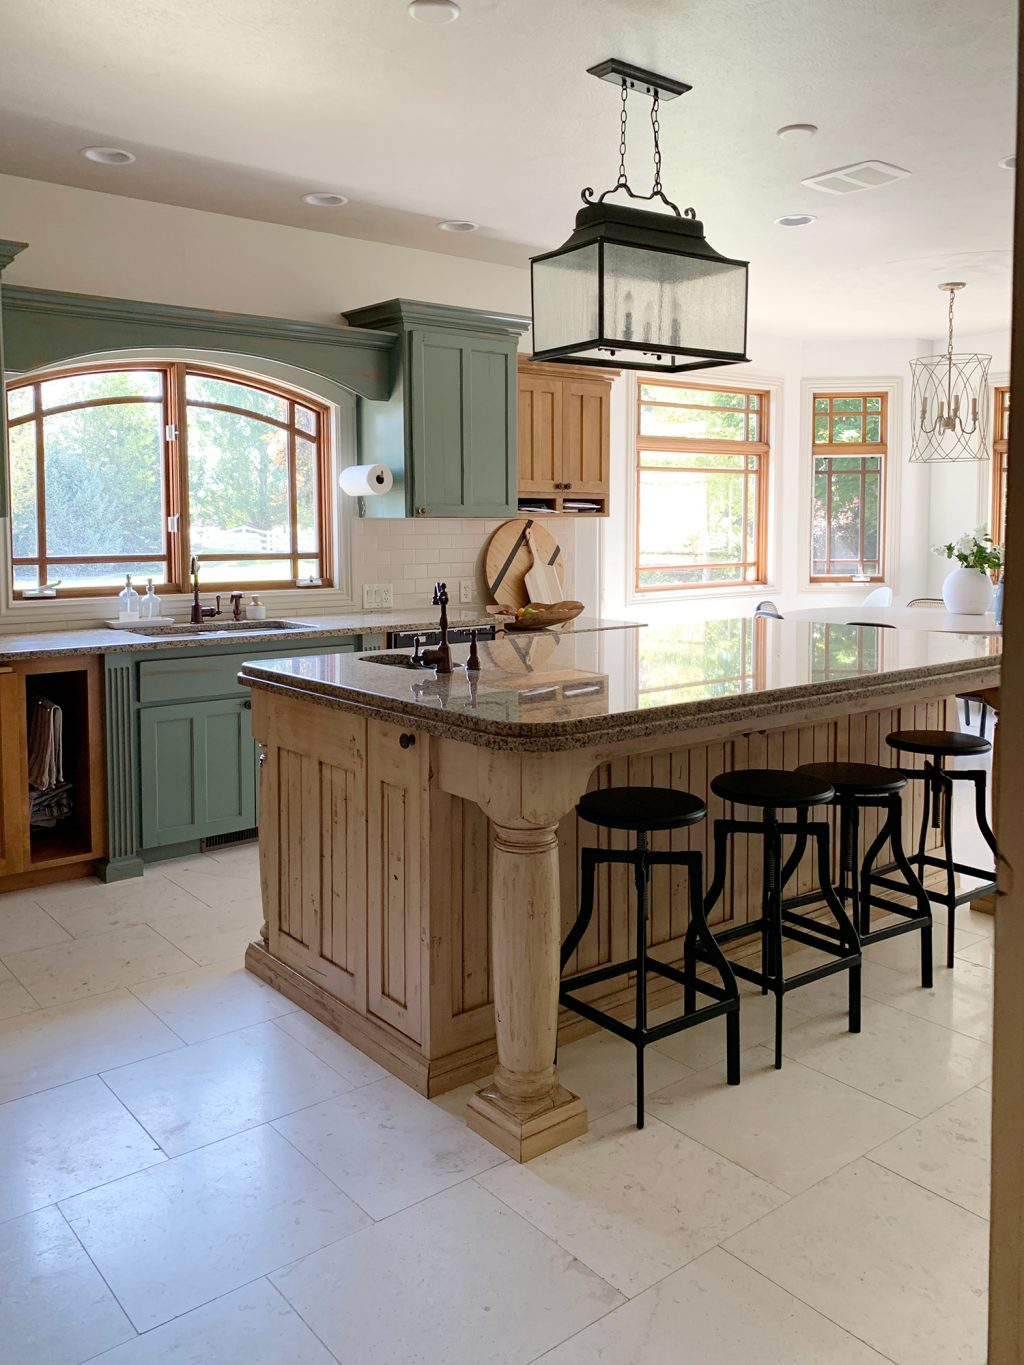 Colors We\'re Considering for Our Phase 1 Kitchen Cabinets ...